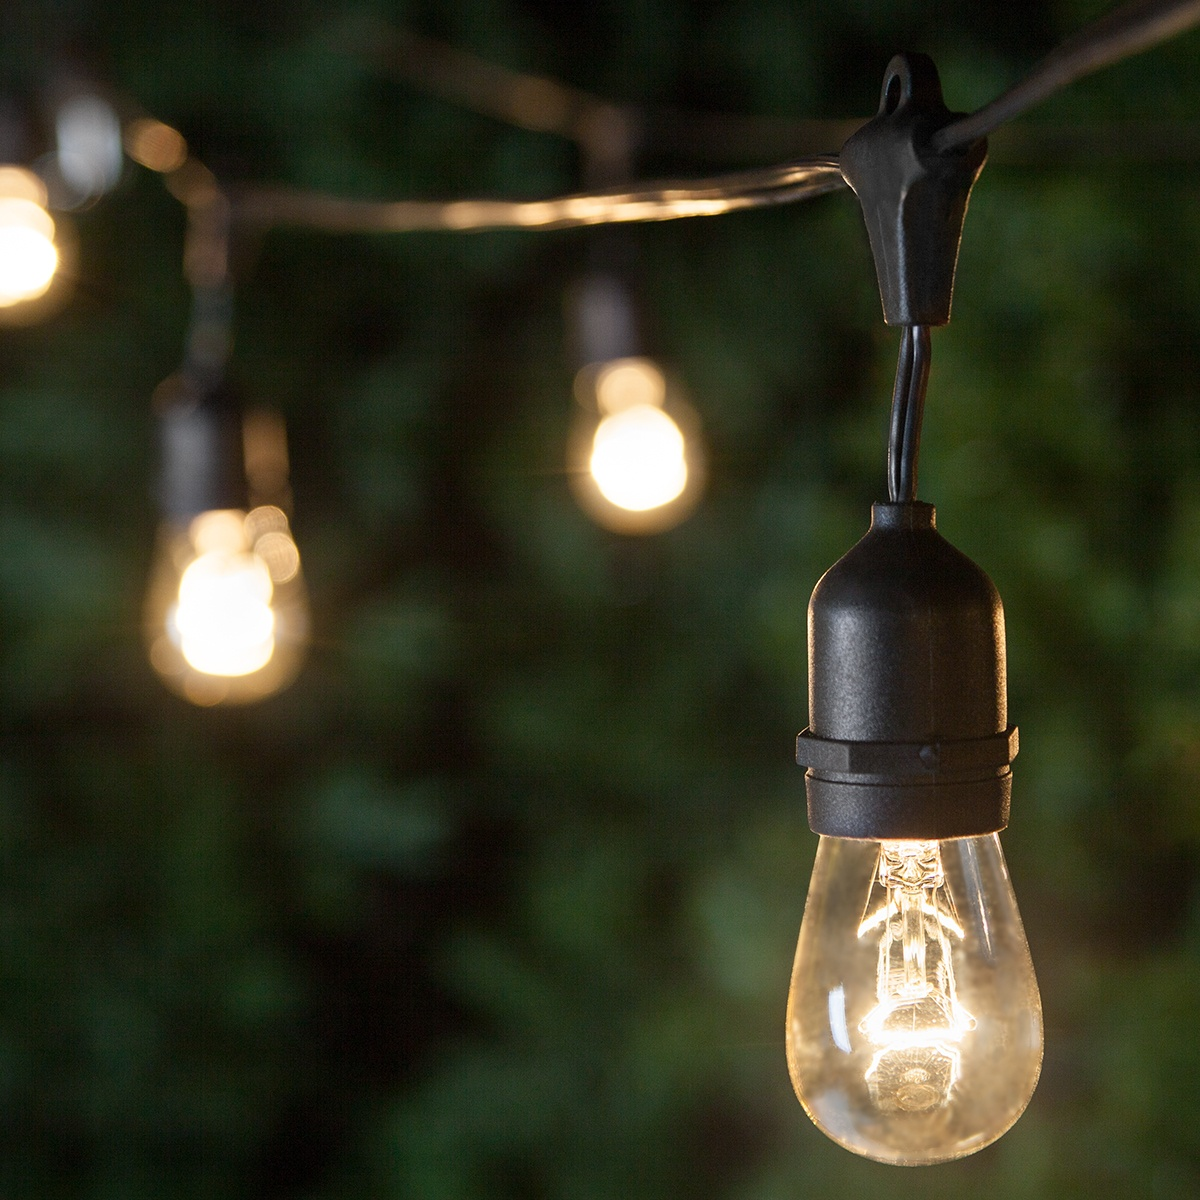 Marvelous Patio Lights   Commercial Clear Patio String Lights, 24 S14 E26 Bulbs Black  Wire